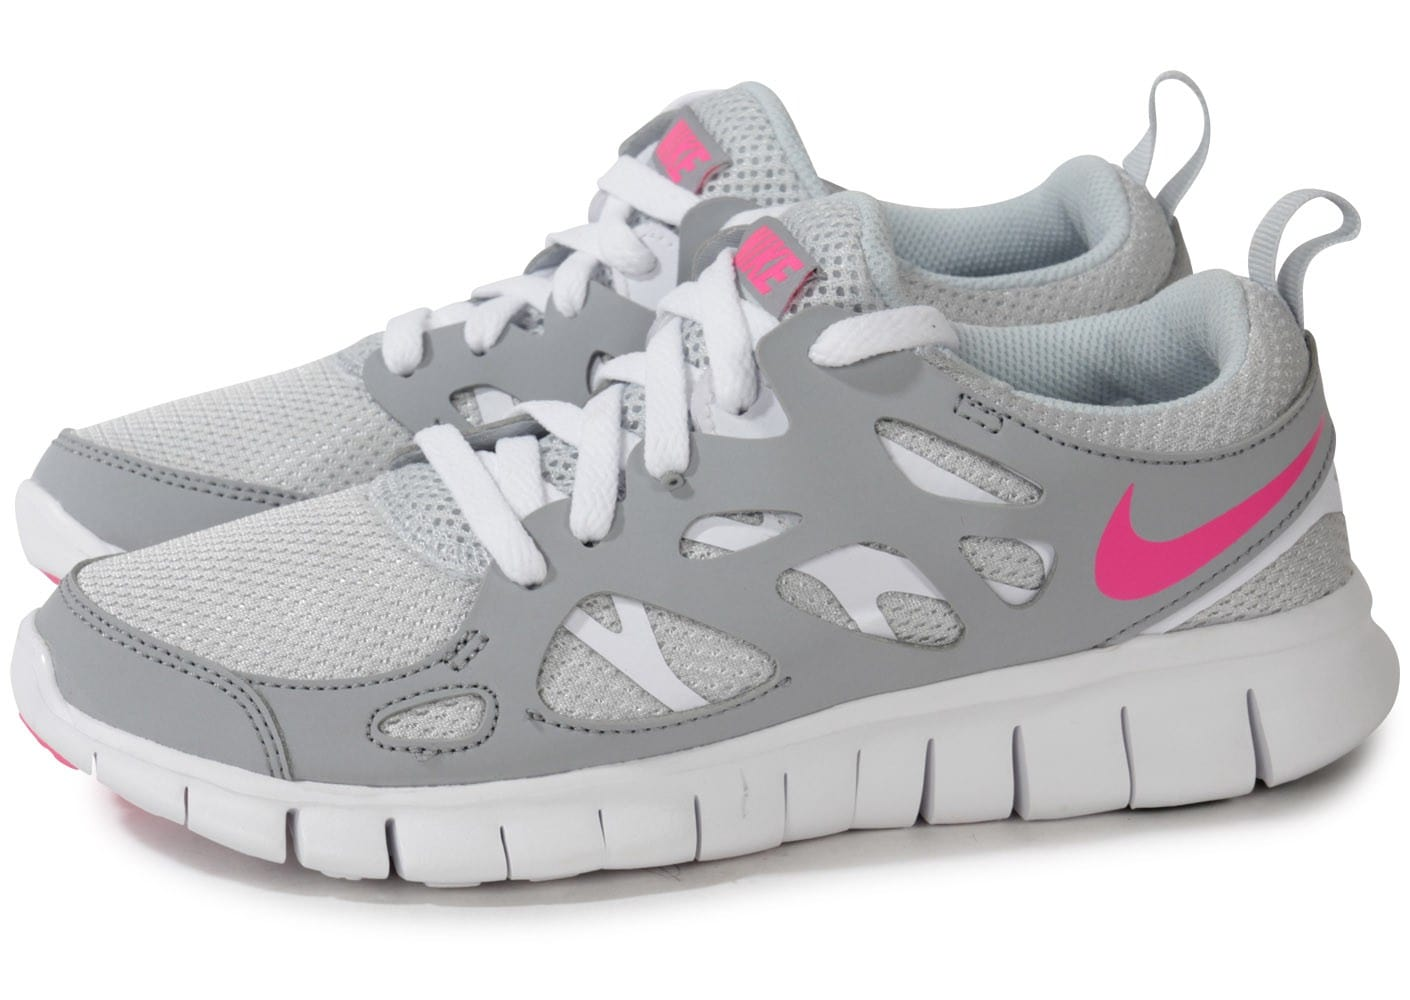 Nike Free Run 2 Chaussures Junior Grise Et Rose Chaussures Chaussures 2 Chausport fec1b7